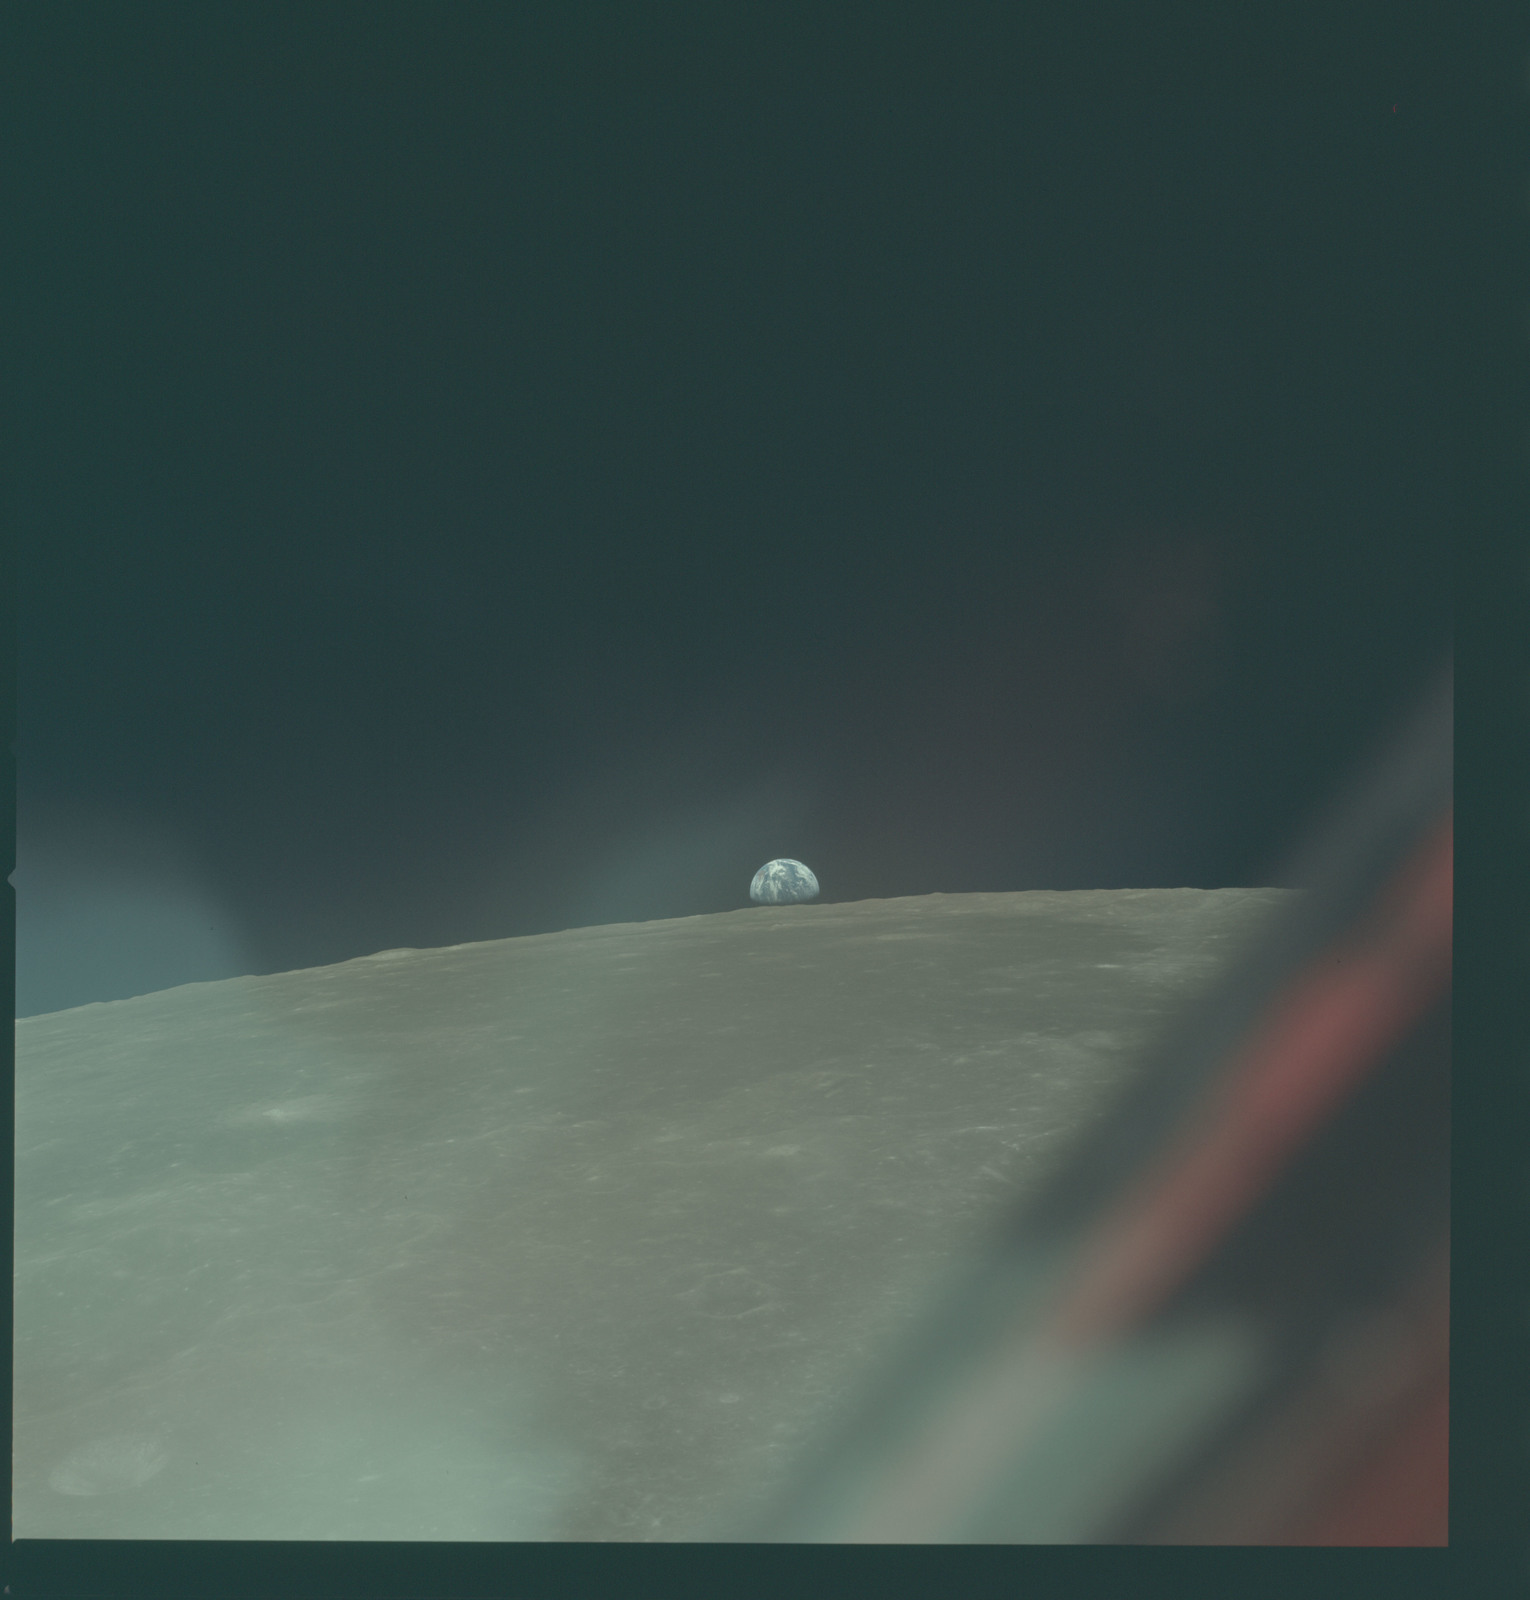 AS11-44-6603 - Apollo 11 - Apollo 11 Mission image - View of Moon limb with Earth on the horizon